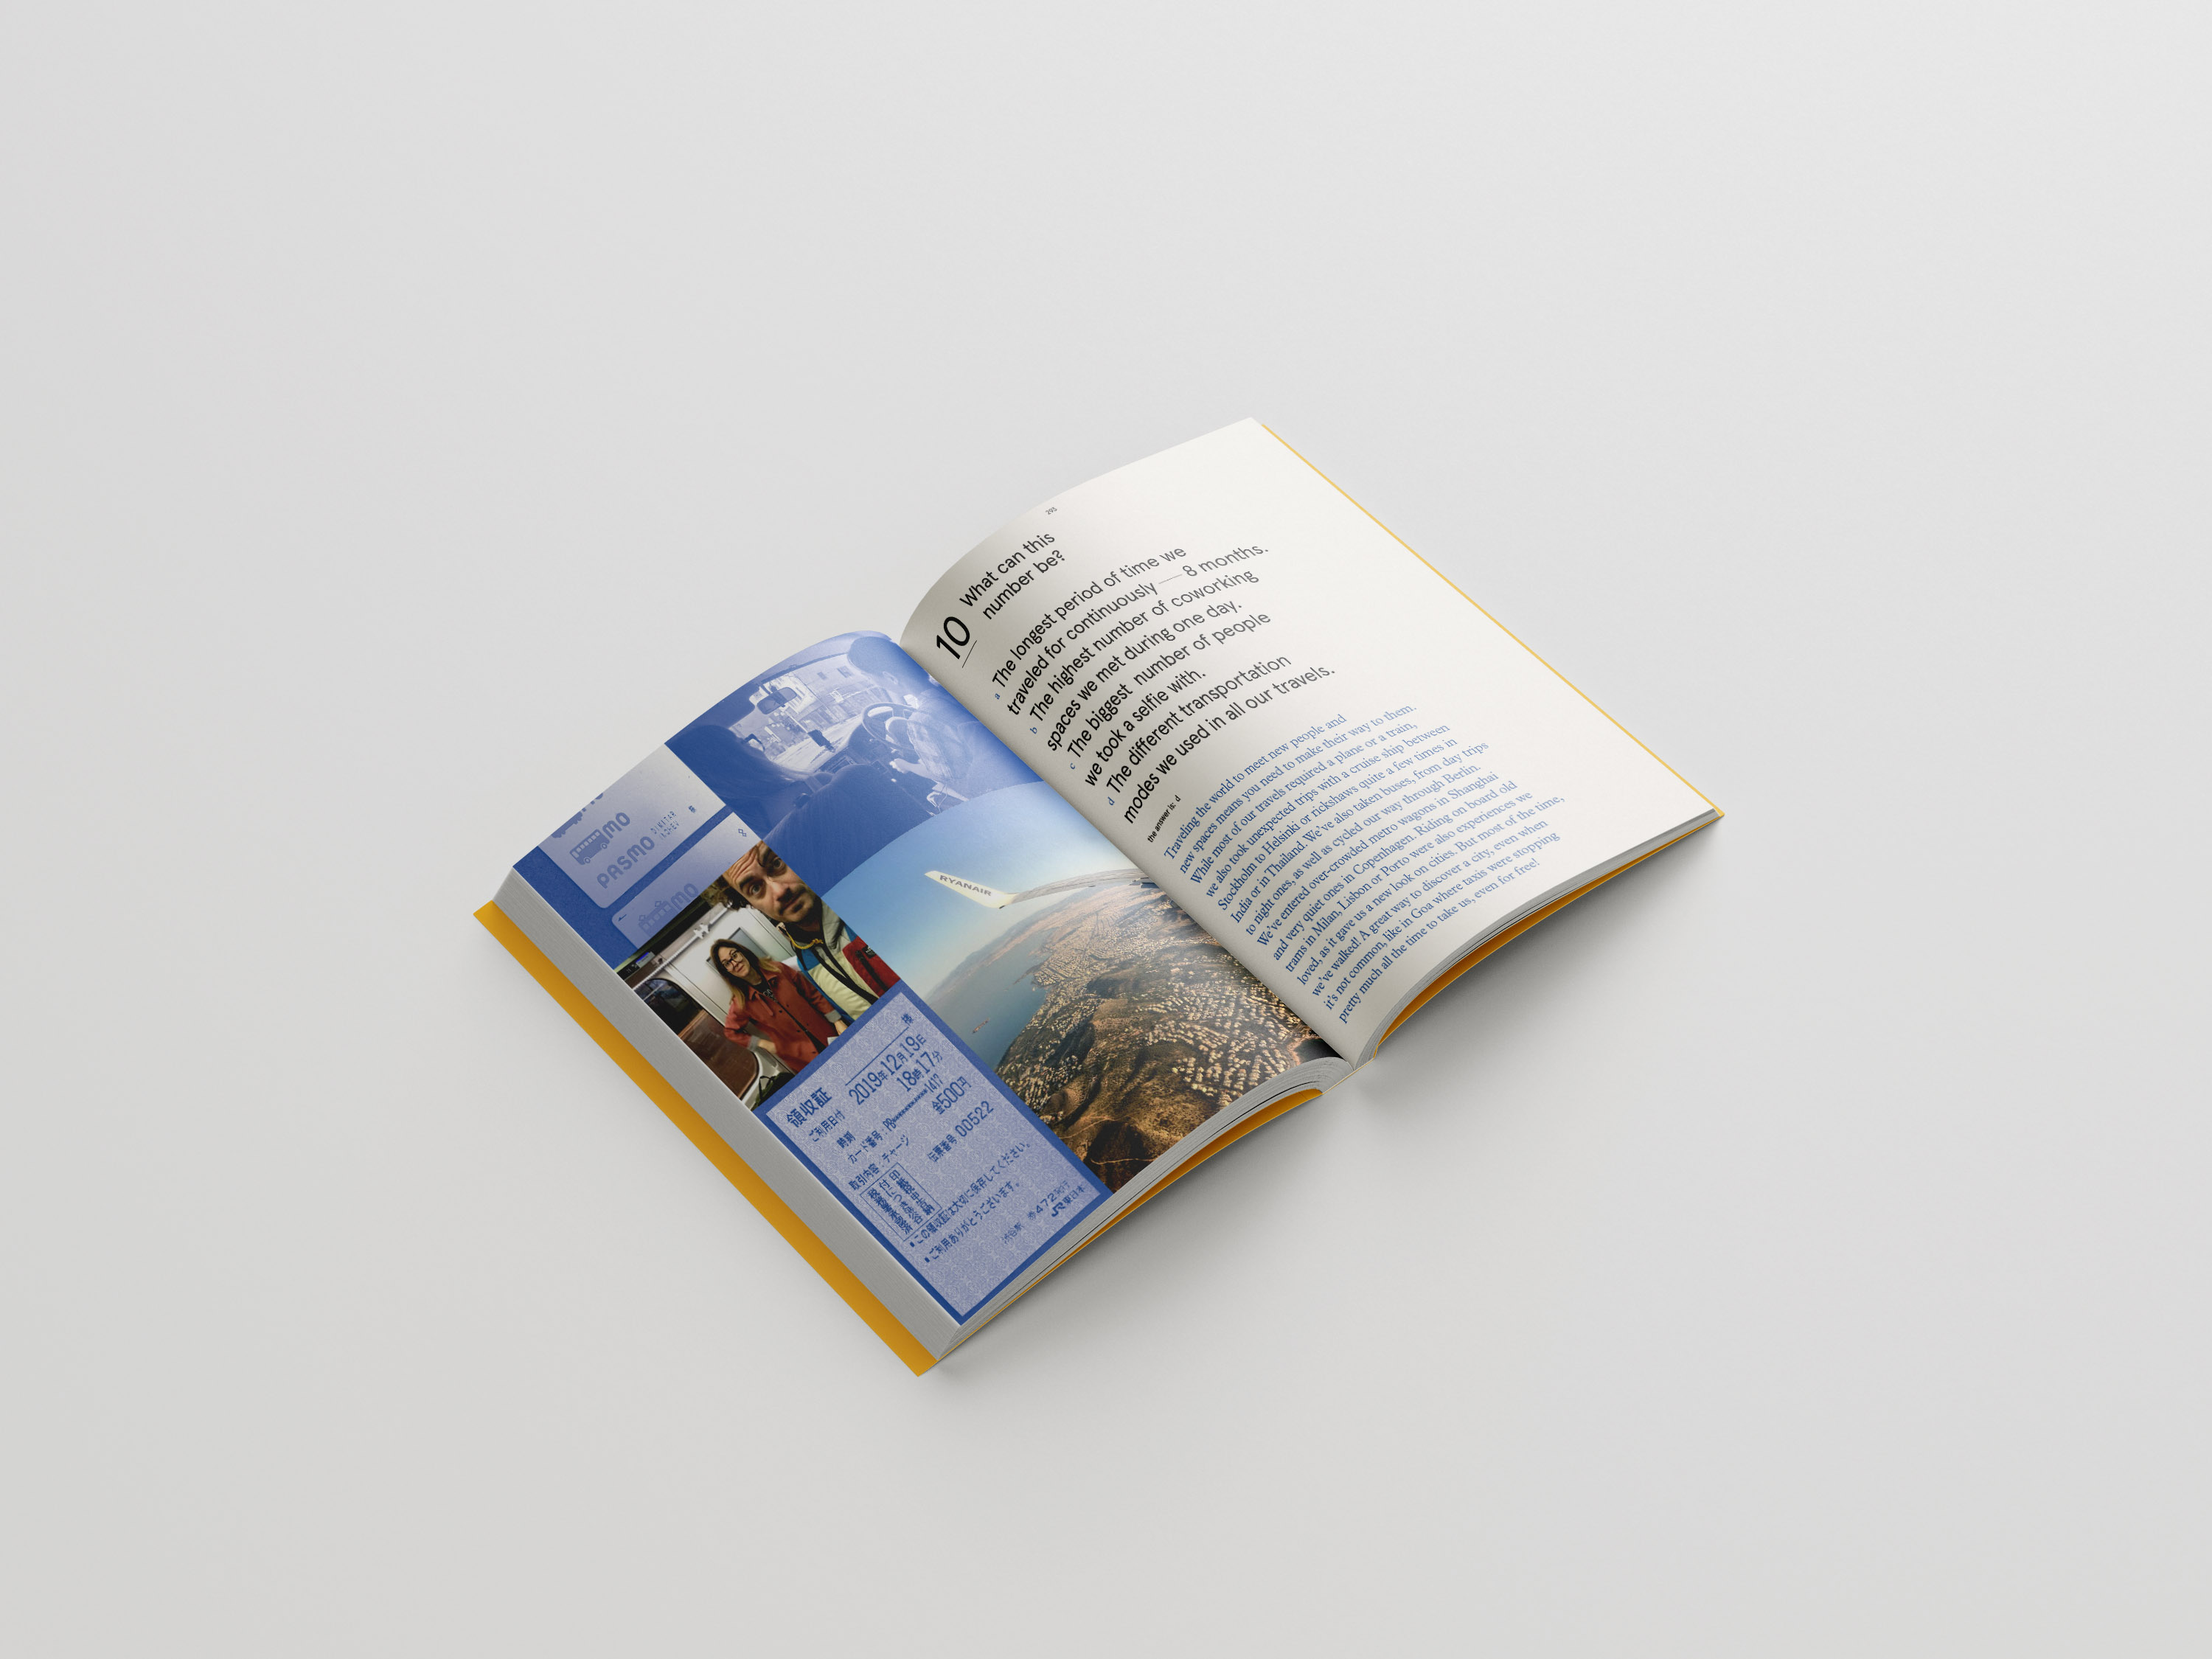 Coworking book page spread, open to page providing information on the authors' travel